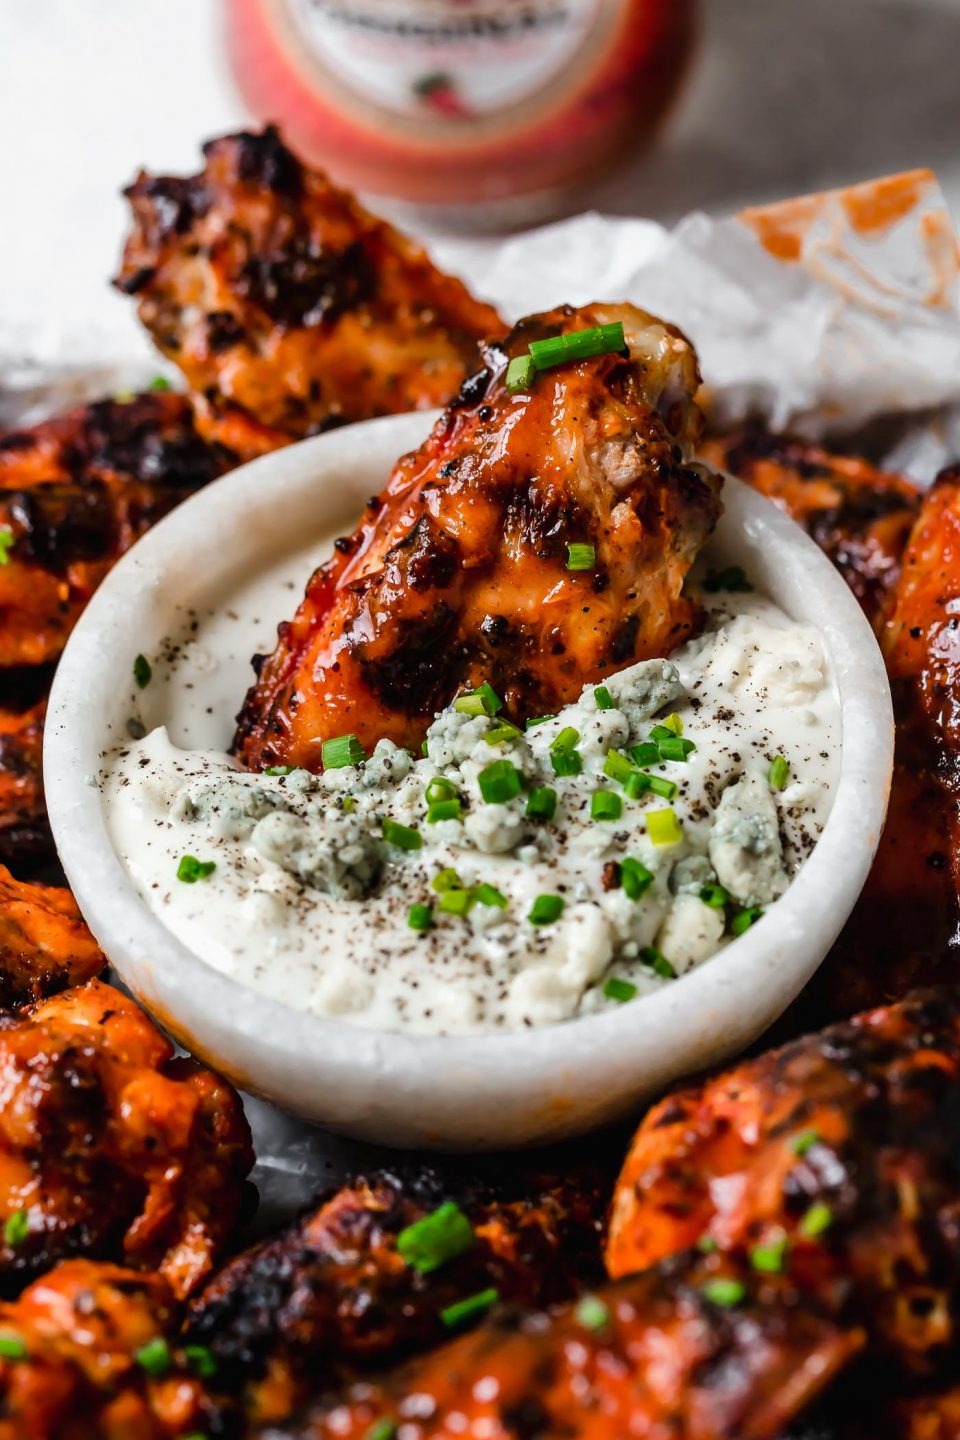 Grilled chicken wing shown being dunked in bleu cheese dipping sauce.